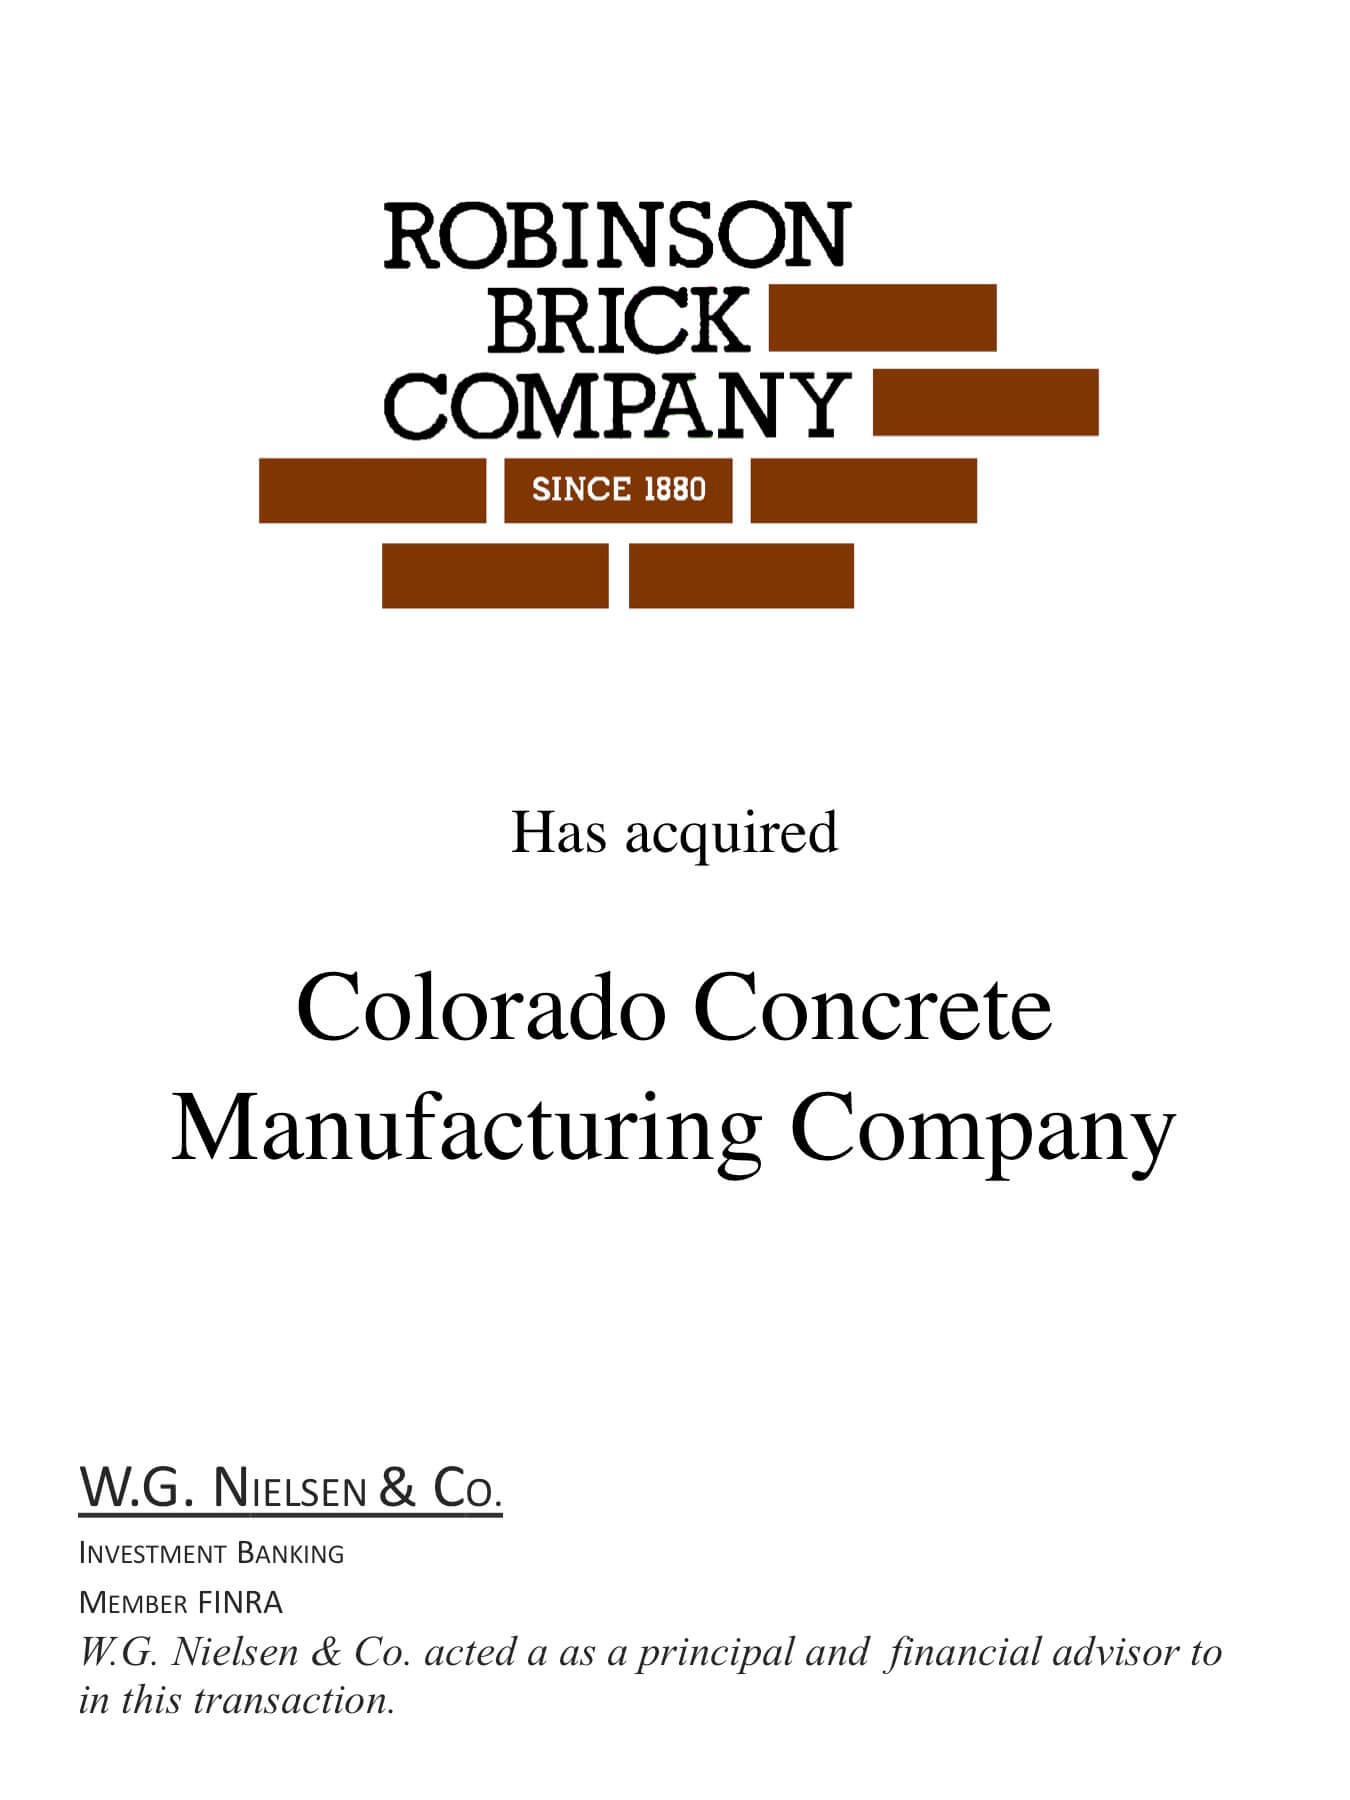 robinson brick company investment banking transaction